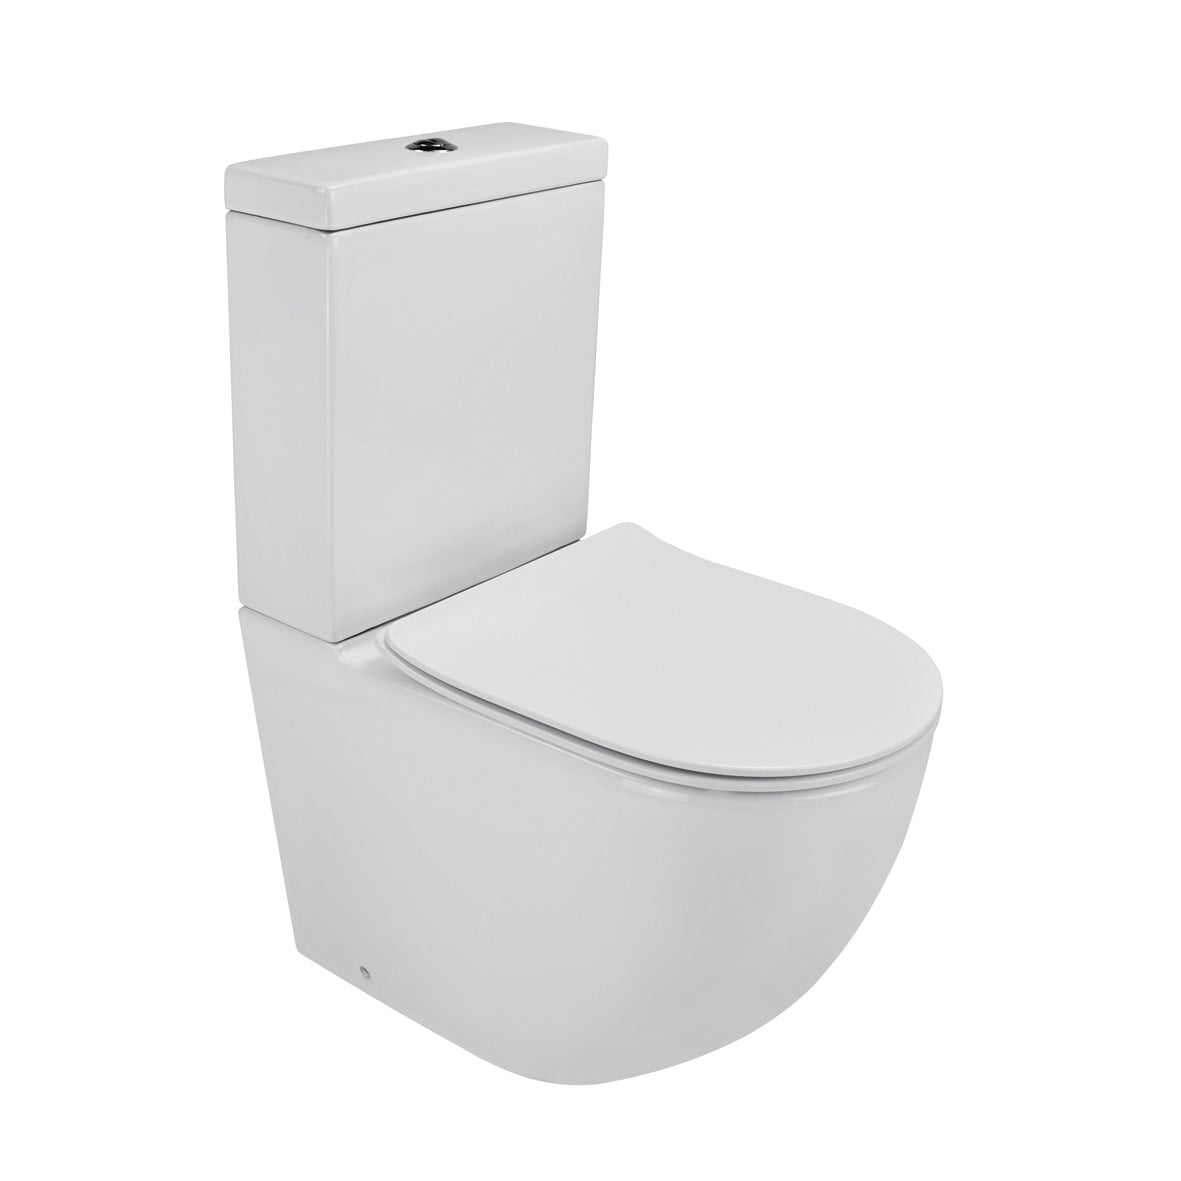 LUCI ZERO TOILET SUITE SLIM – RIMLESS DESIGN